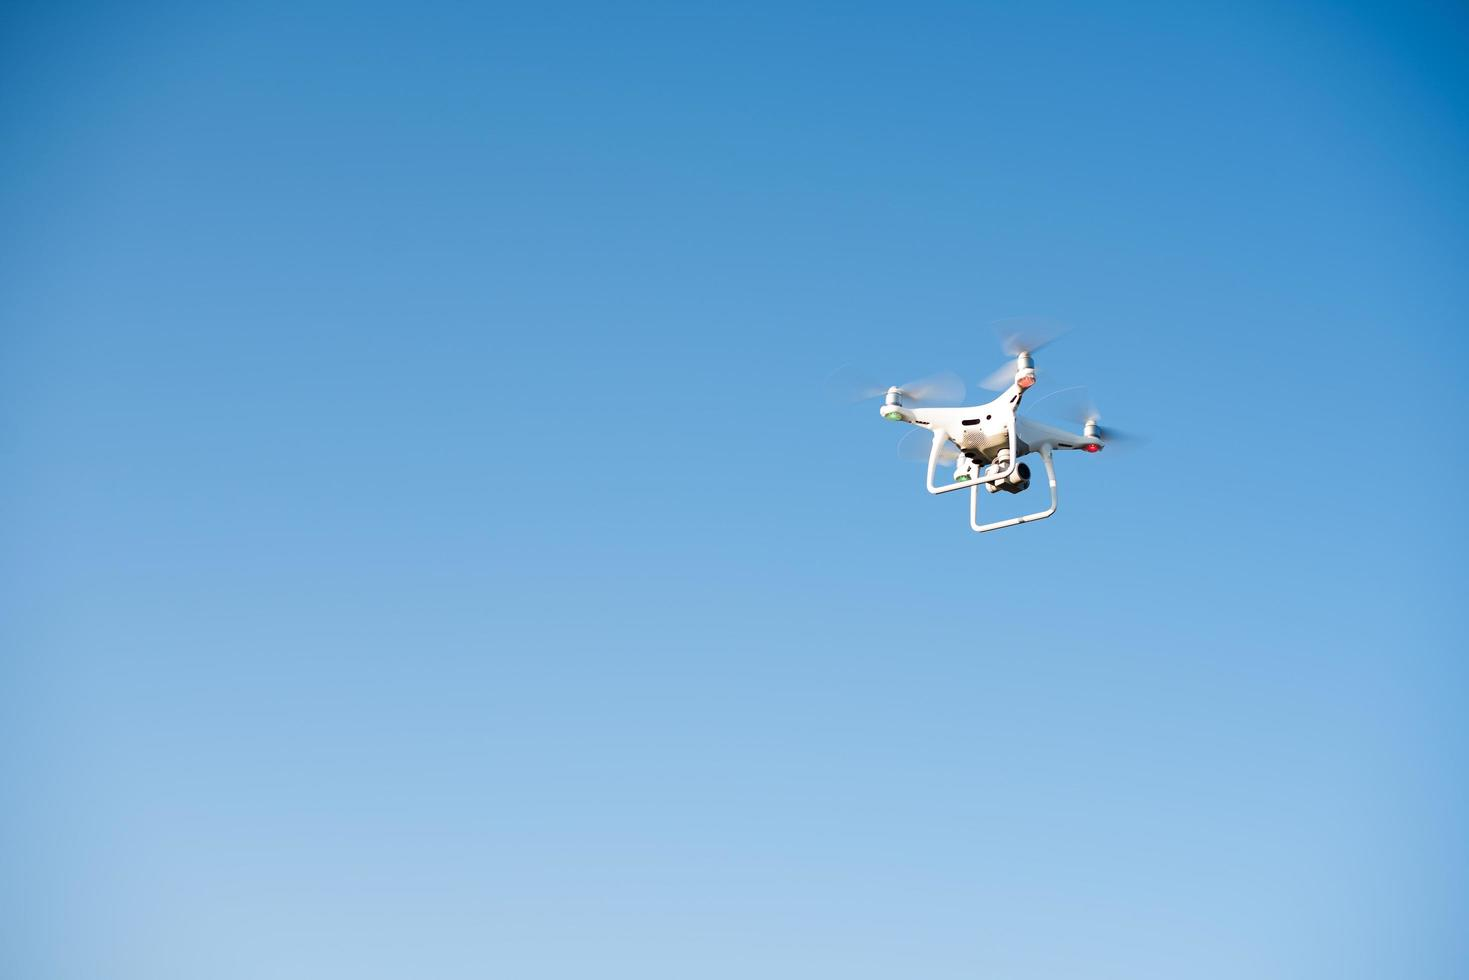 White drone fly in the sky recording a video photo